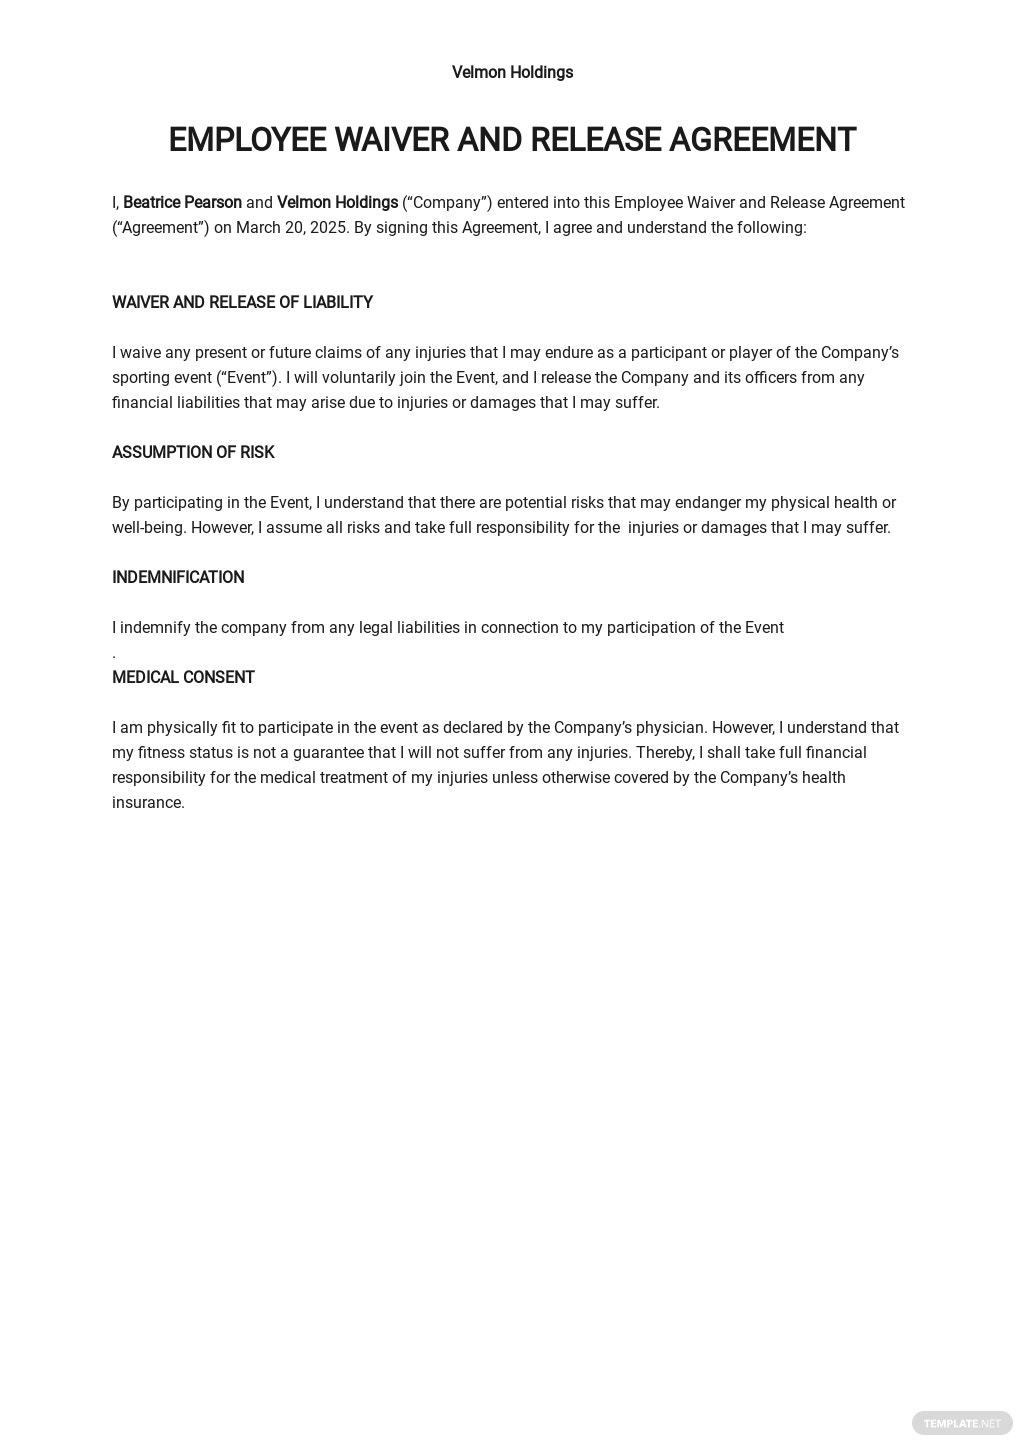 Sample Employee Waiver & Release Agreement Template.jpe